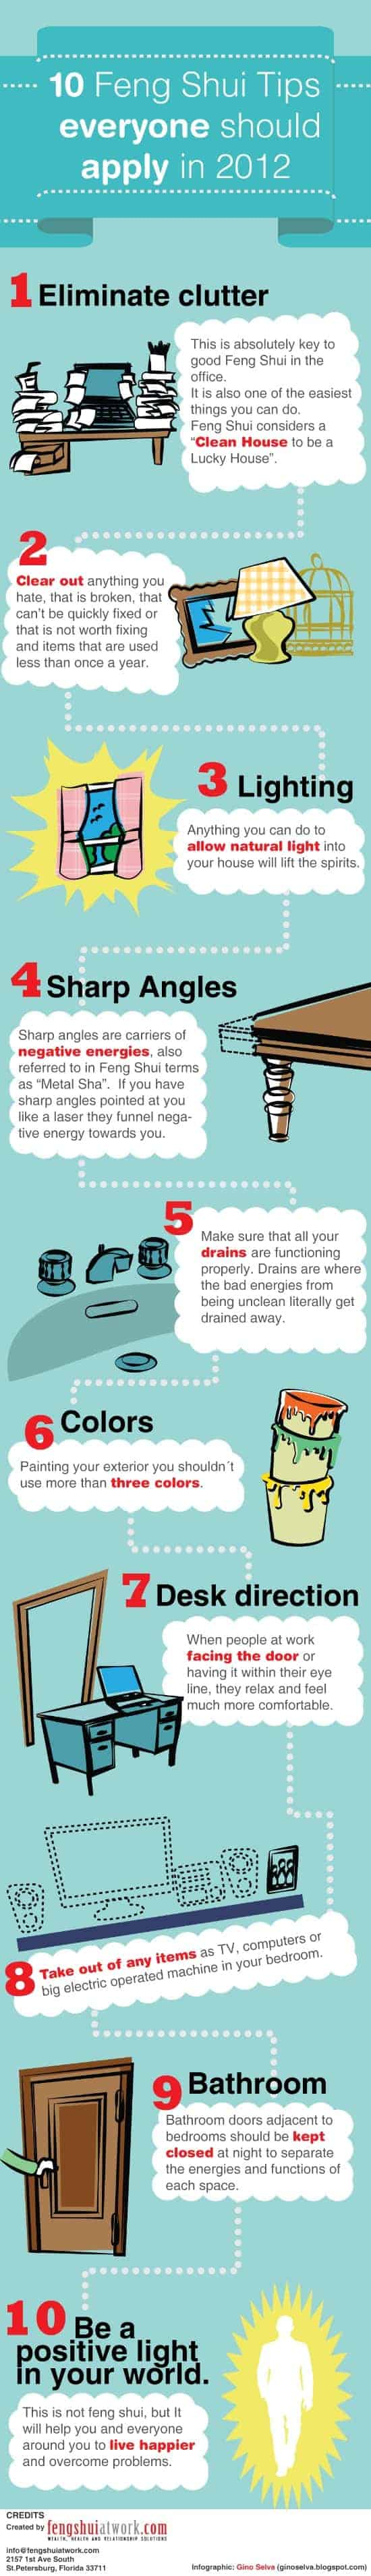 feng-shui-tips-infographic-small